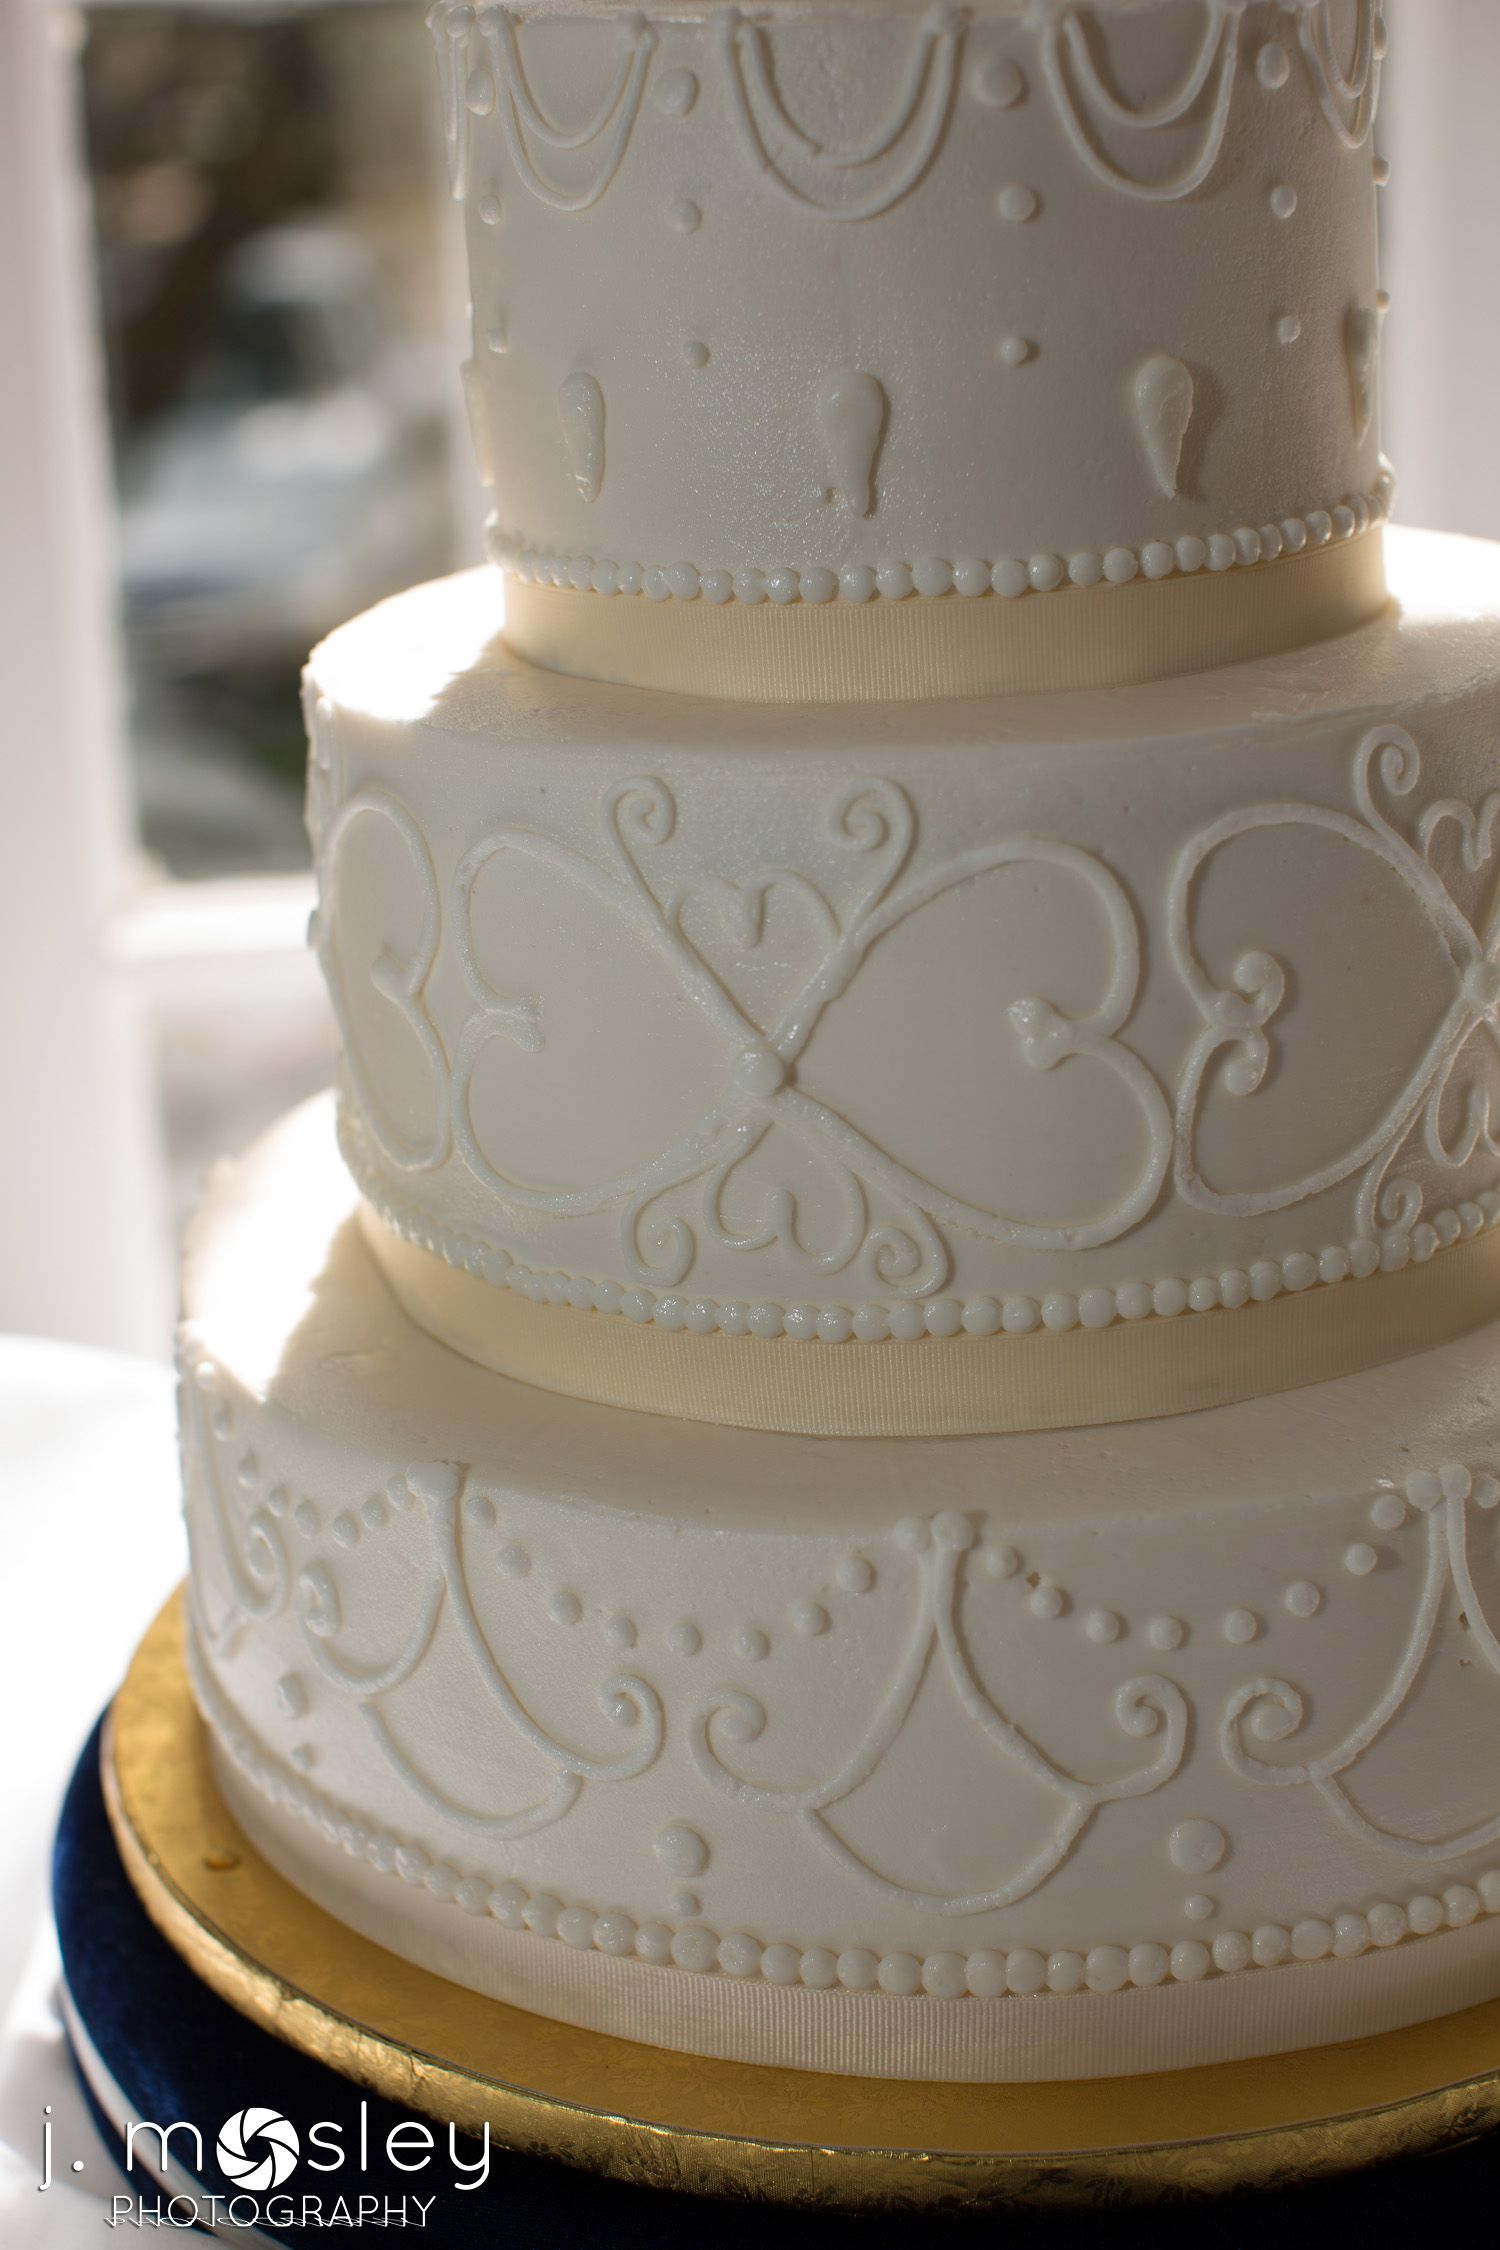 Pin By Kelly On Our Wedding Wedding Cake Frosting Designs Wedding Cake Frosting Wedding Cake Photos